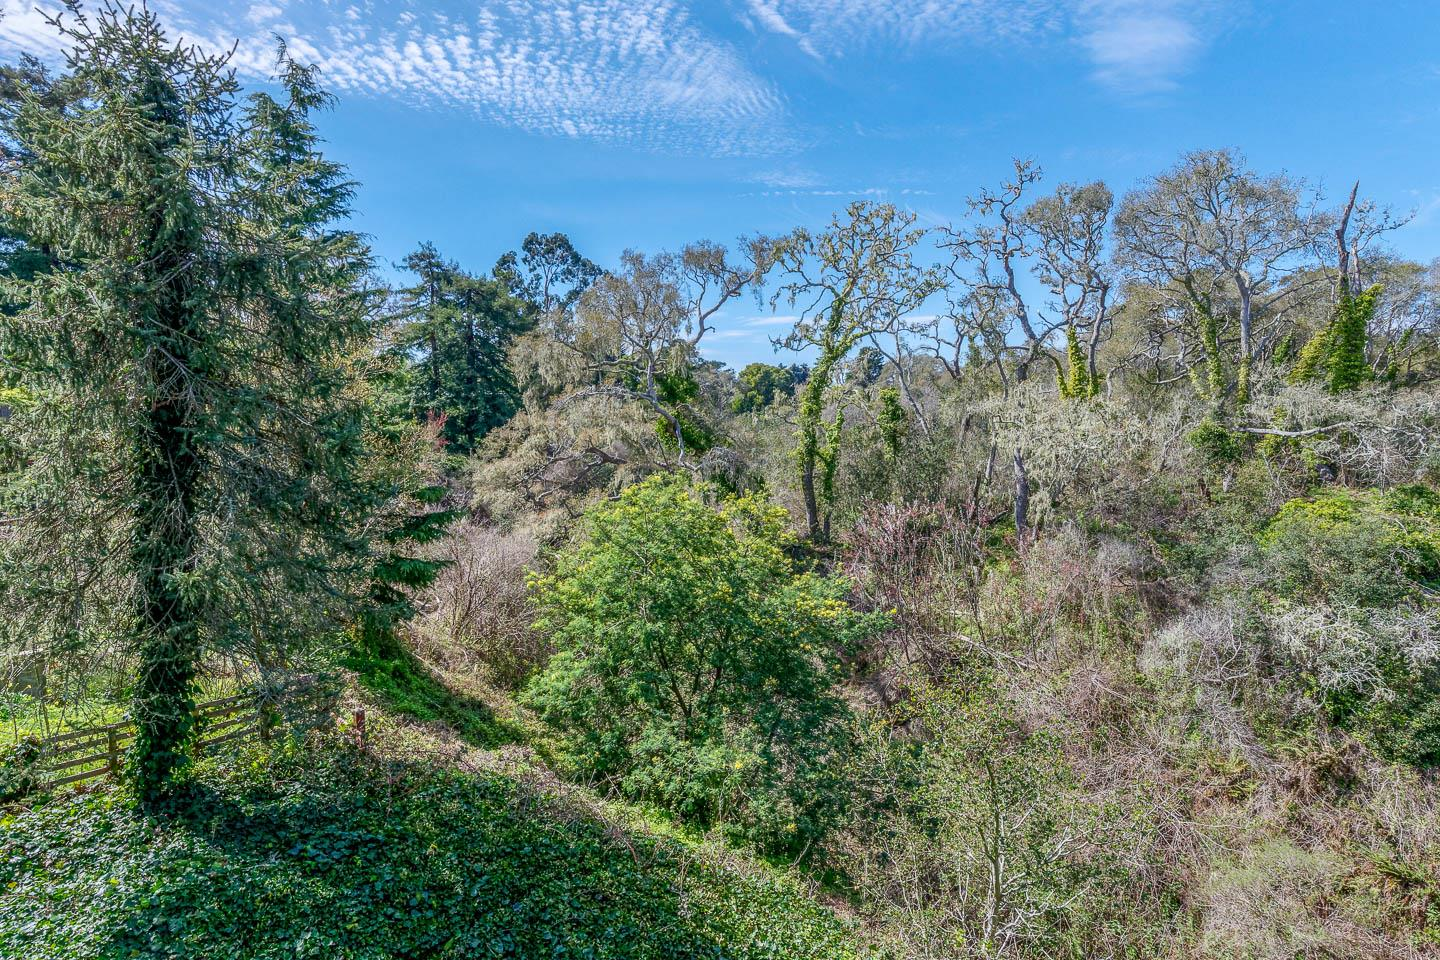 Don't miss the opportunity to own this 2 Bedroom 2 bathroom home plus a  bonus room with separate entrance in quiet Seacliff neighborhood. Perfect for first time buyer or someone looking for a seaside getaway. Close to beach,shopping and more. This cozy home features hardwood floors and greenbelt views.The property sits on a 8688 sqt lot. Ready for a remodel expansion? If your looking to get into the Santa Cruz real estate market this would be a great place to start.